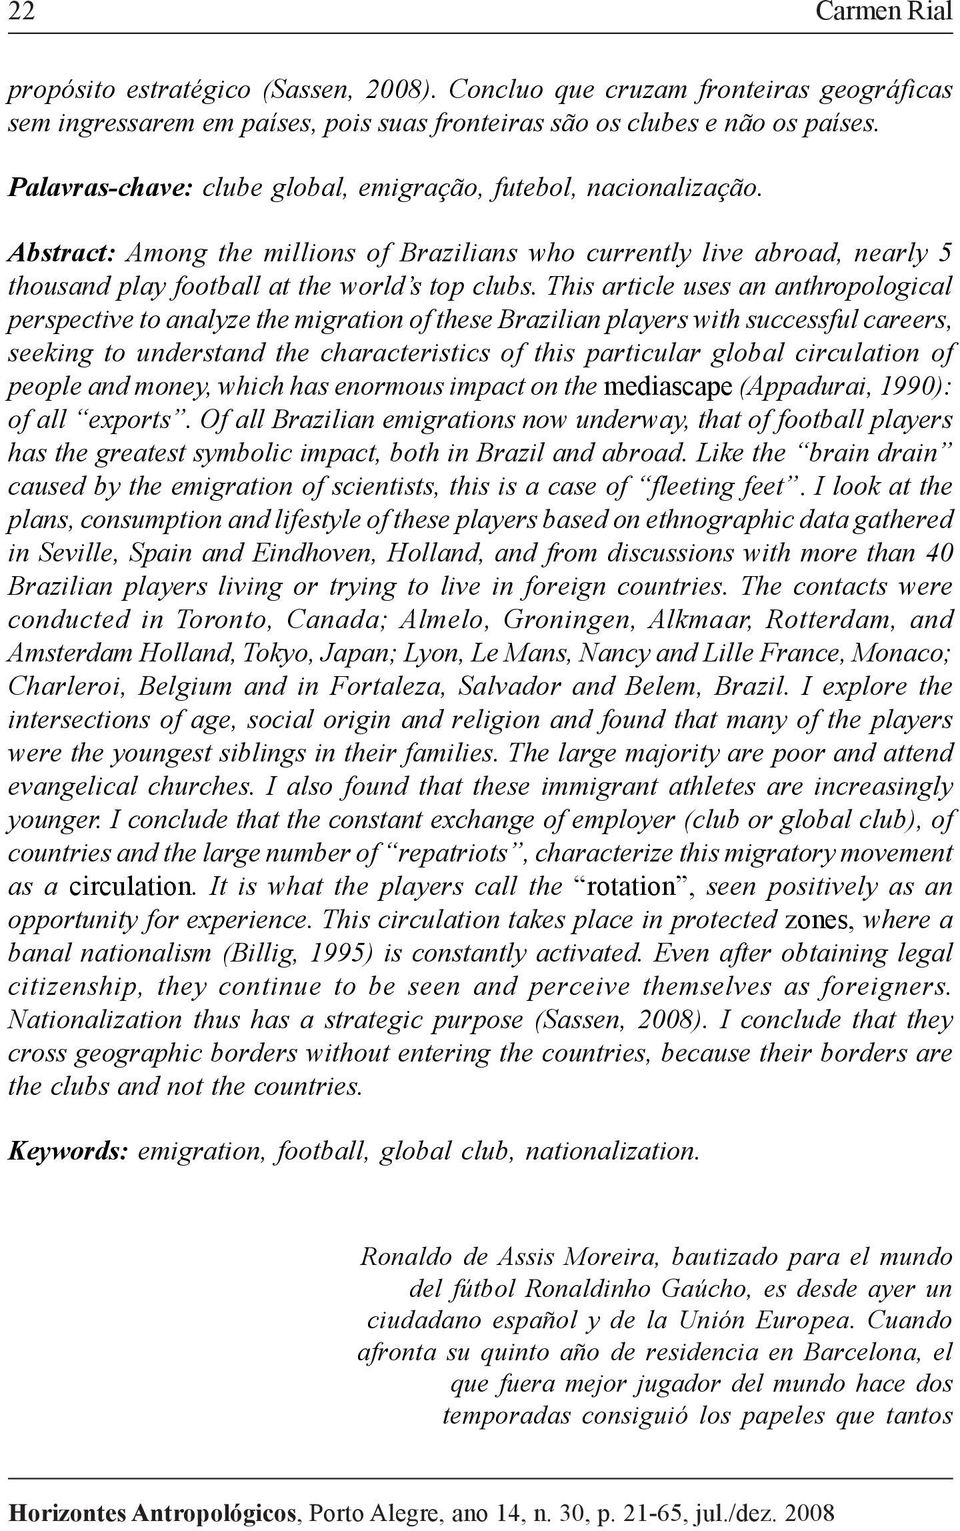 This article uses an anthropological perspective to analyze the migration of these Brazilian players with successful careers, seeking to understand the characteristics of this particular global